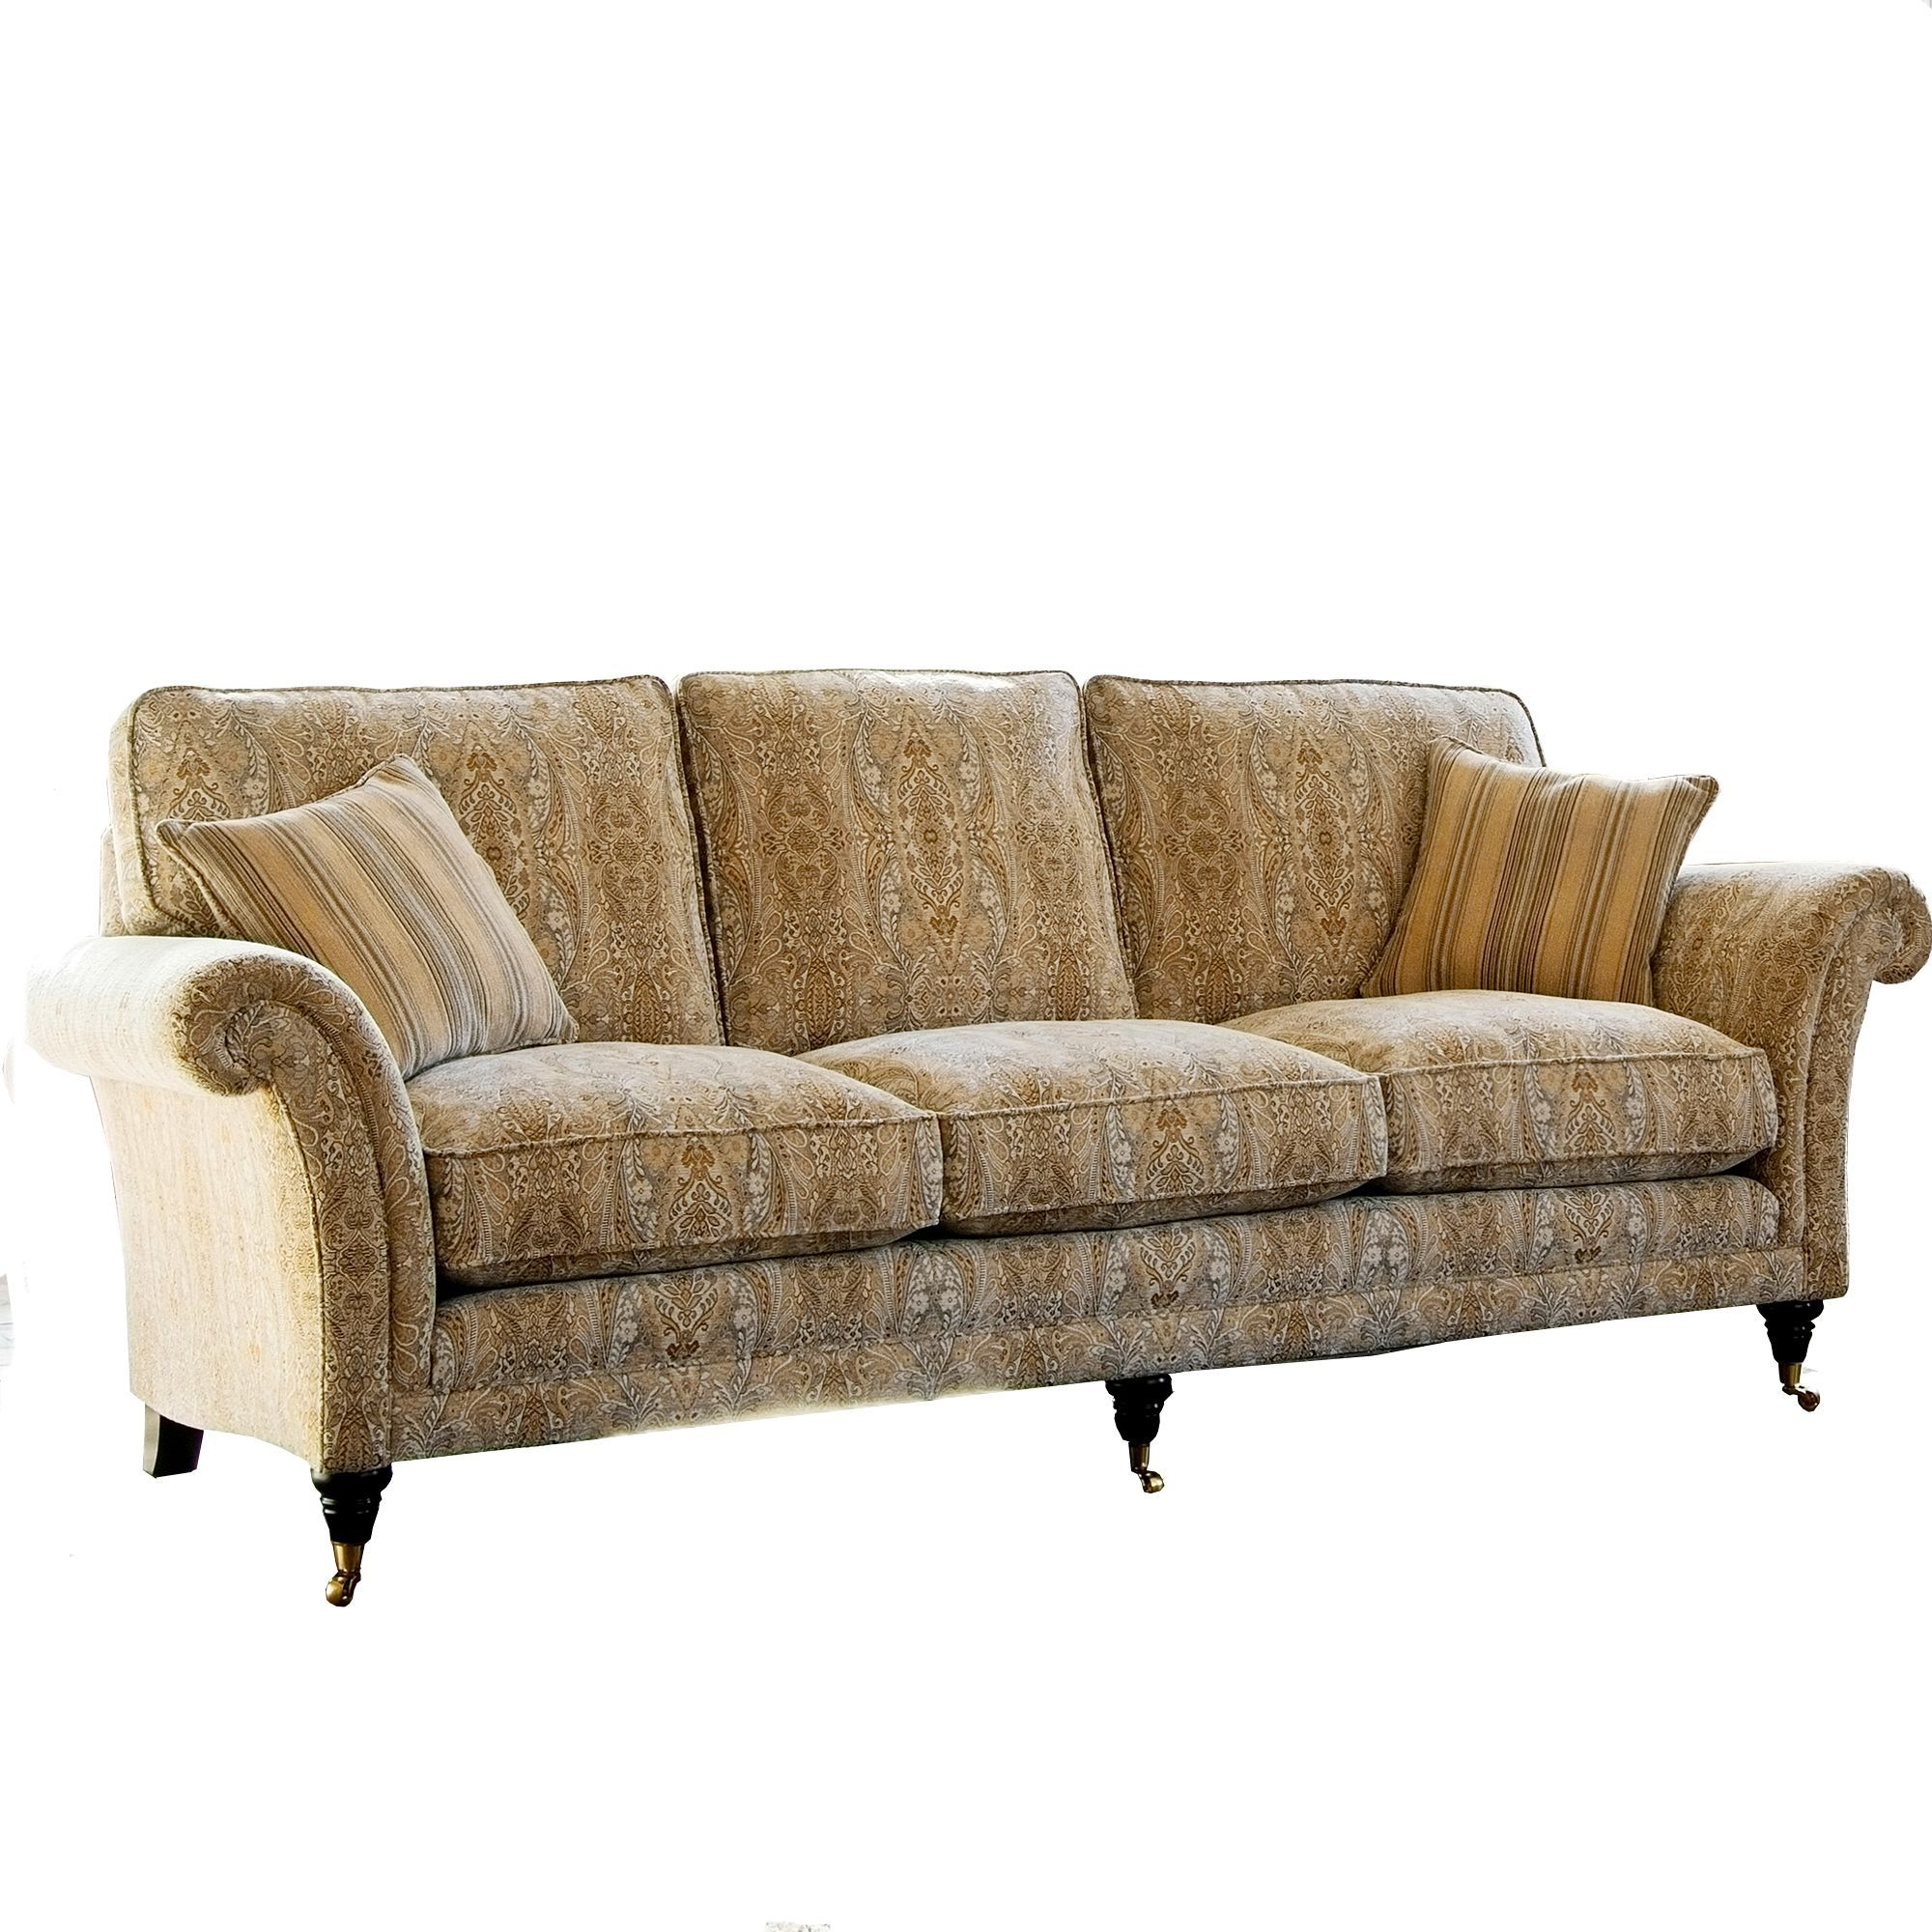 knoll sofas uk pallet sofa bed pinterest parker burghley grand leather cookes